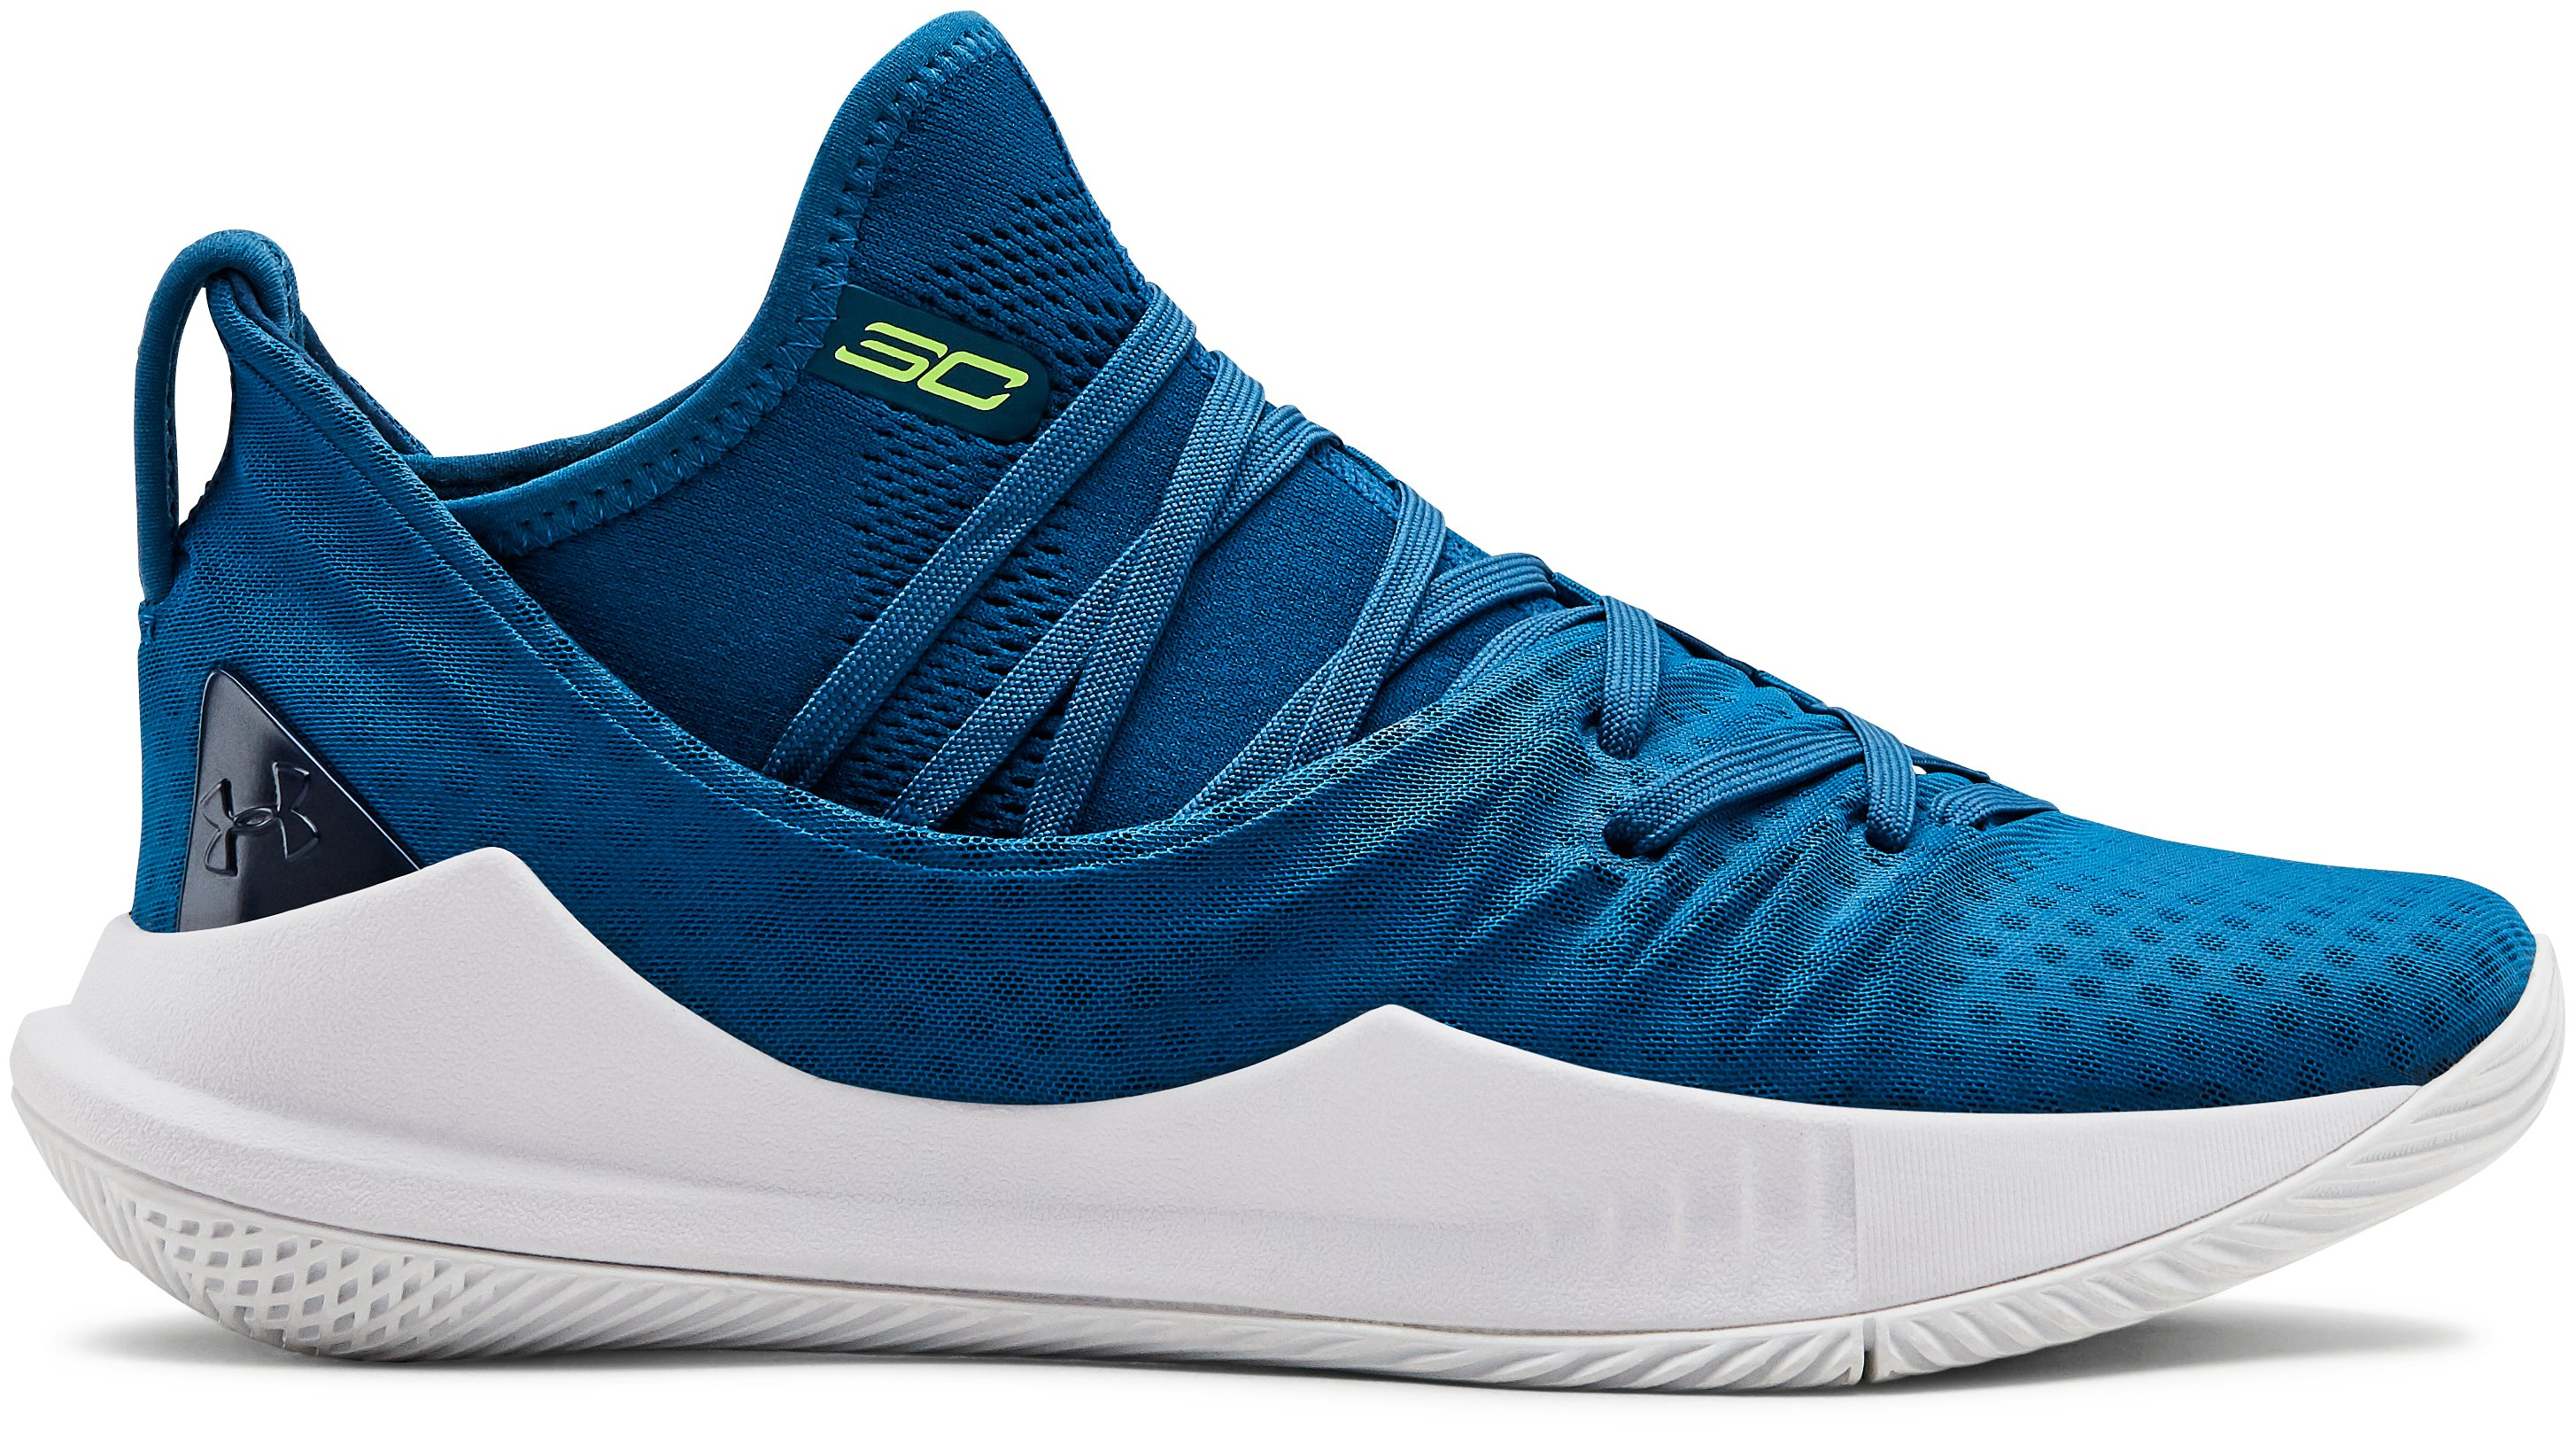 Boys' Grade School UA Curry 5 Basketball Shoes, 360 degree view